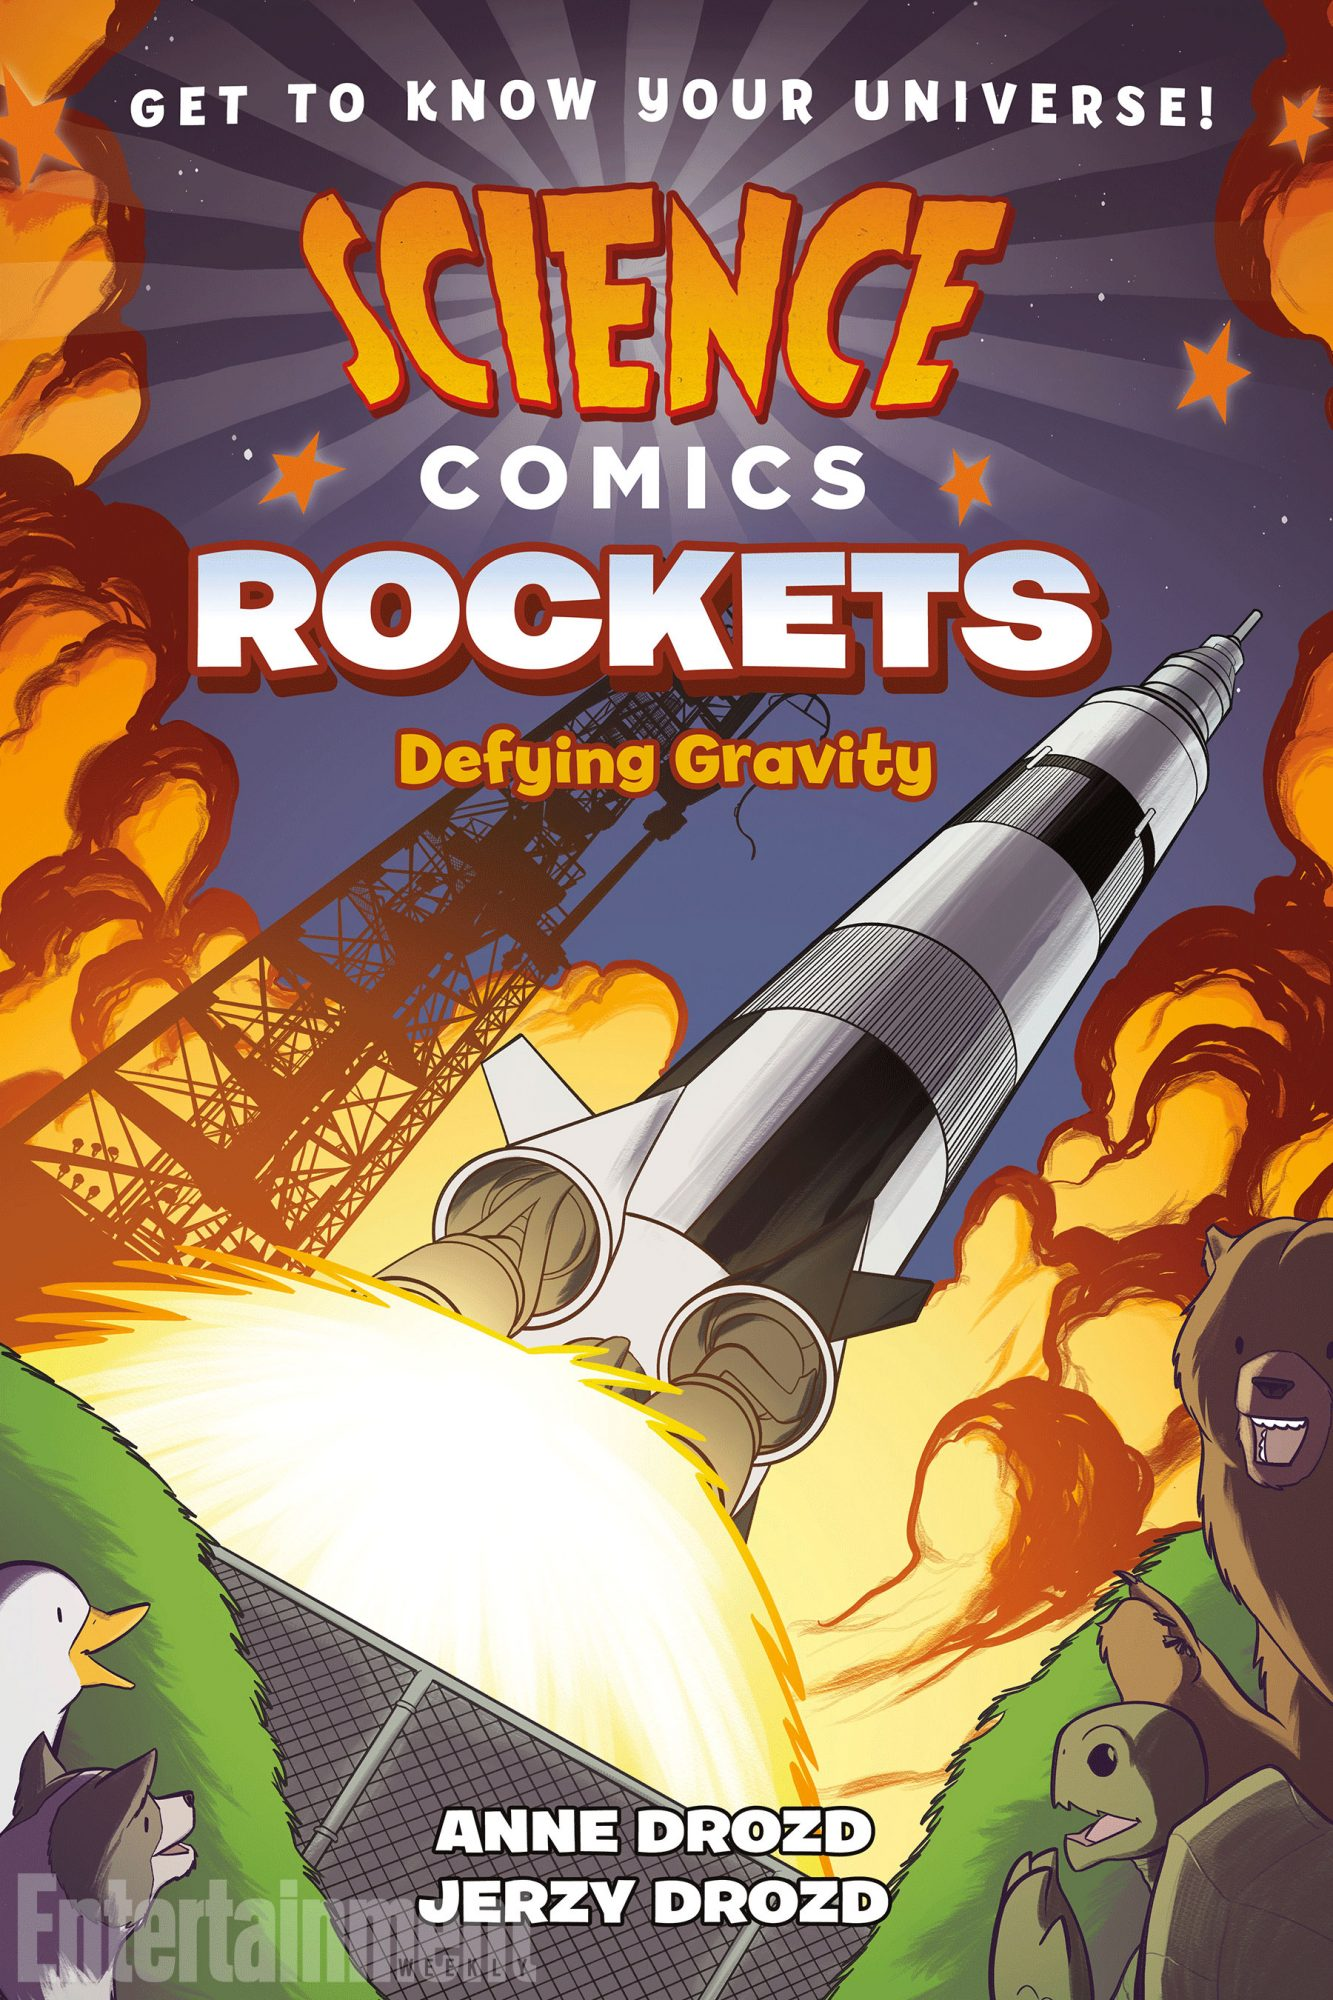 ScienceComics_Rockets_RGB